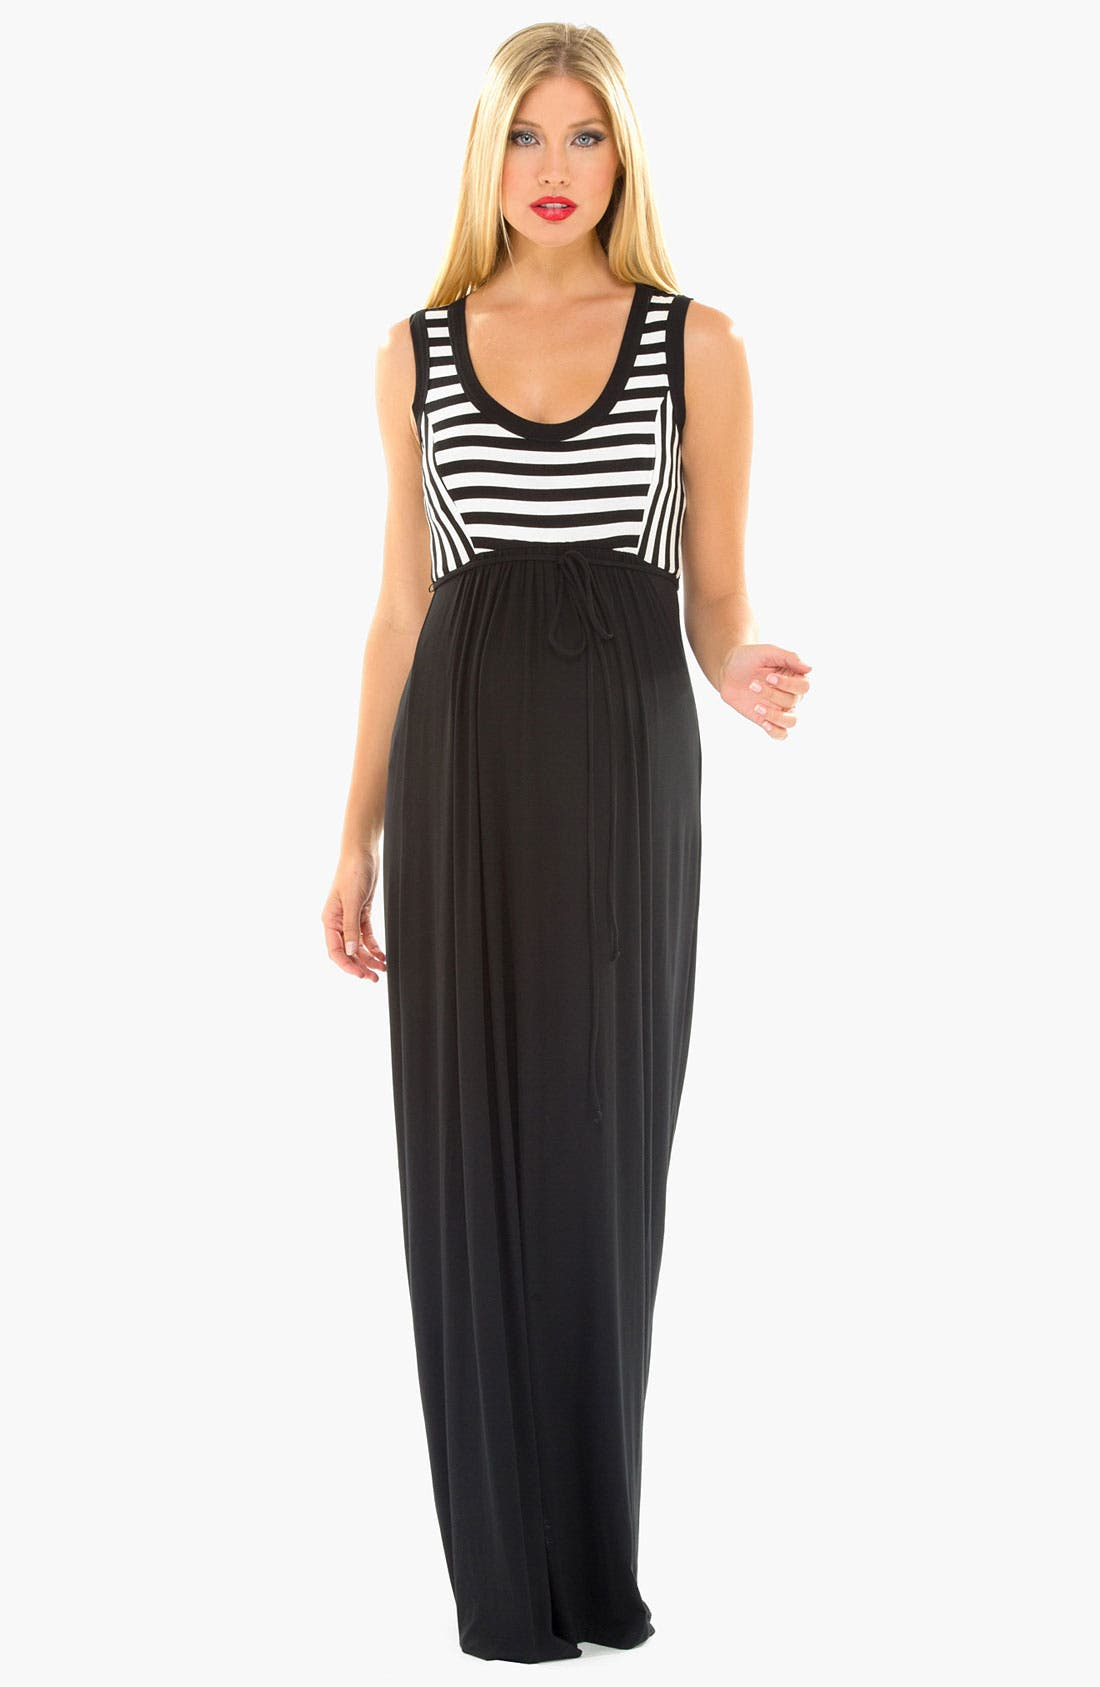 Main Image - Olian Stripe Knit Maternity Maxi Dress